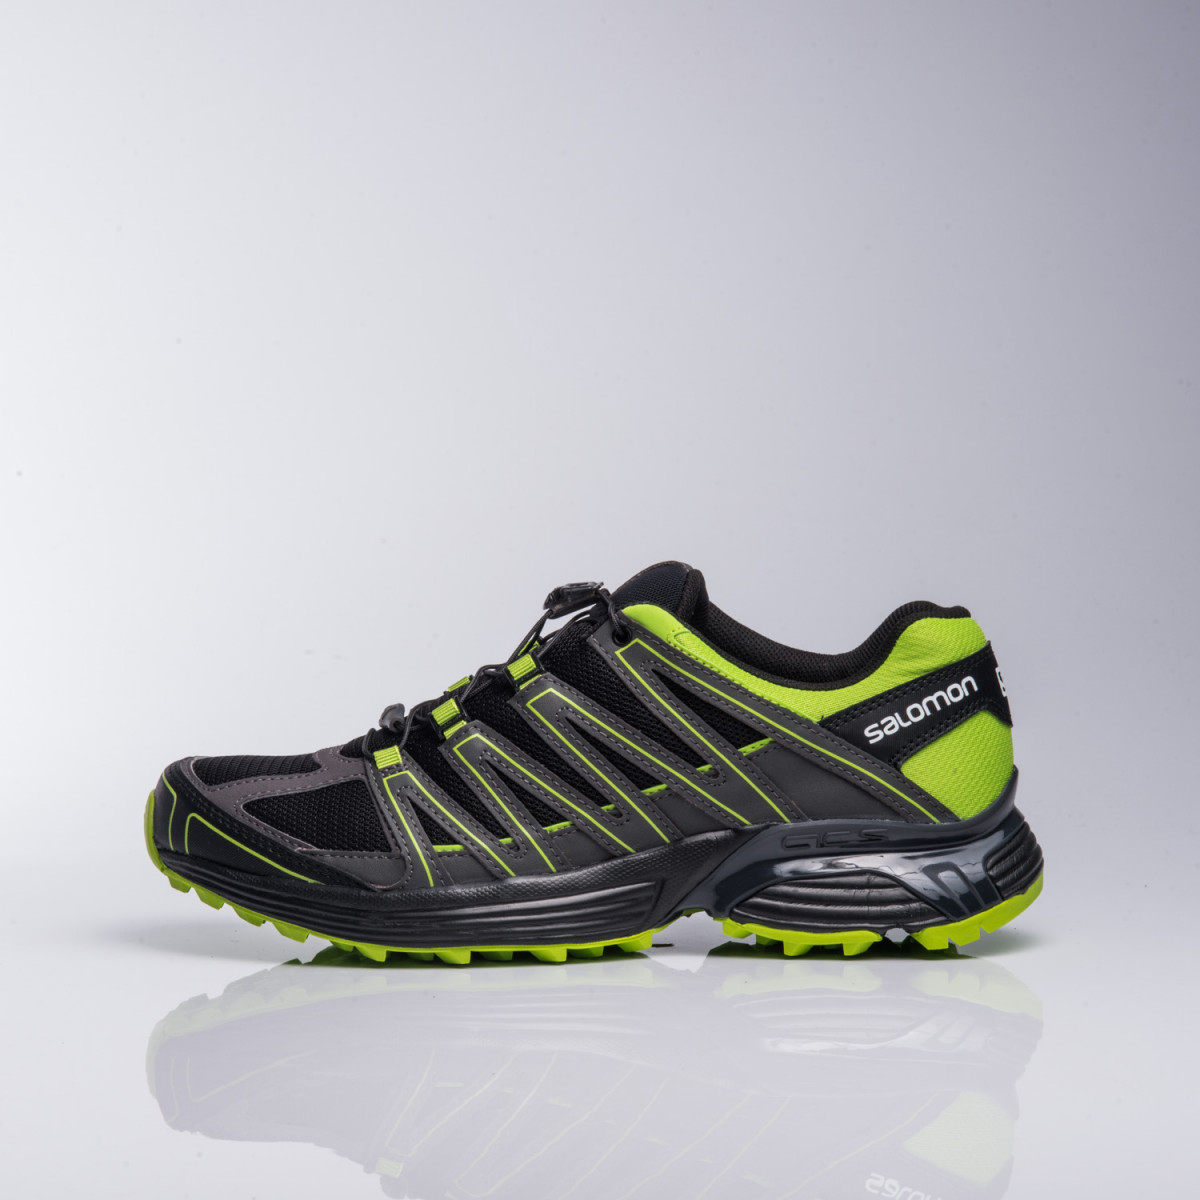 Zapatillas Salomon Xt Taurus